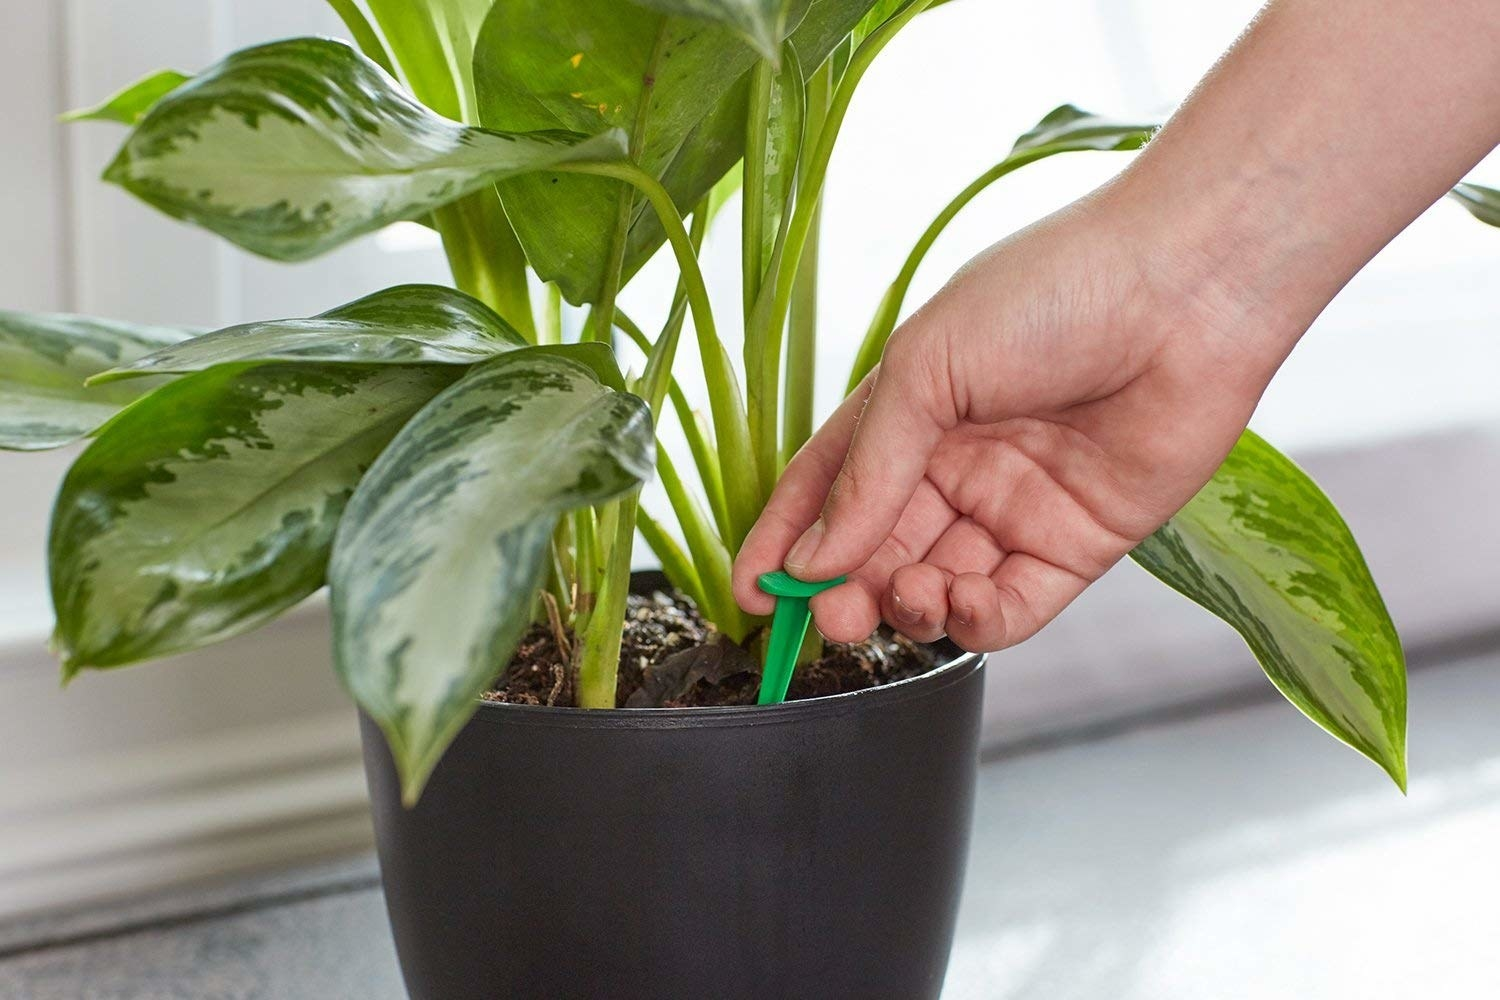 A Miracle-Gro plant food spike being placed in a plant.